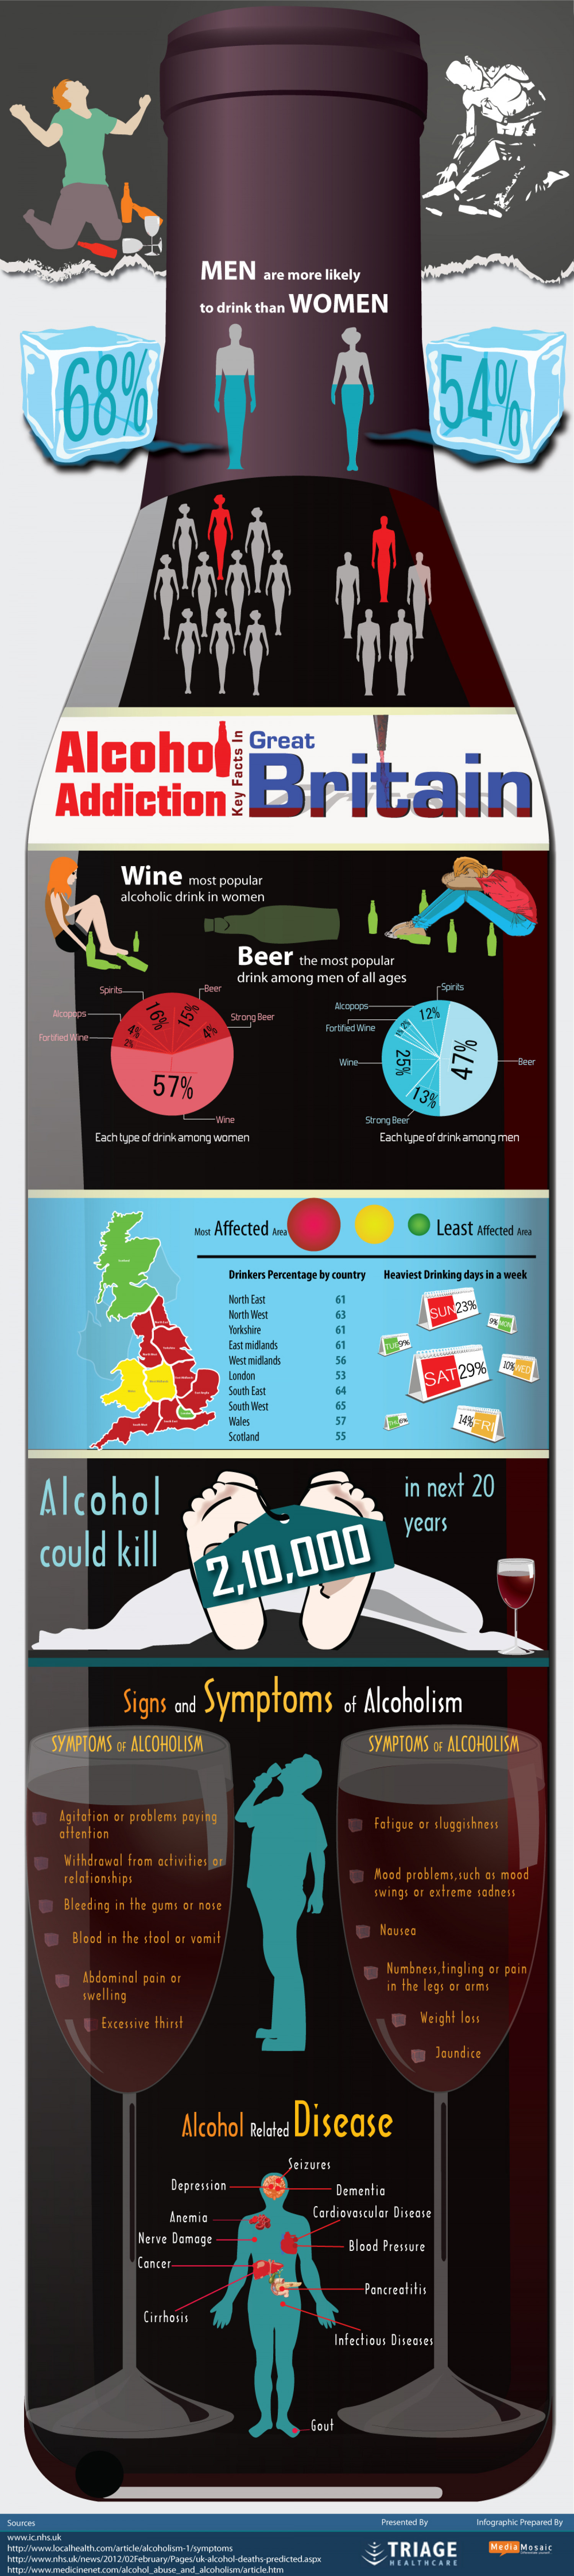 Addiction Dependency and Effects of Drinking Alcohol Infographic